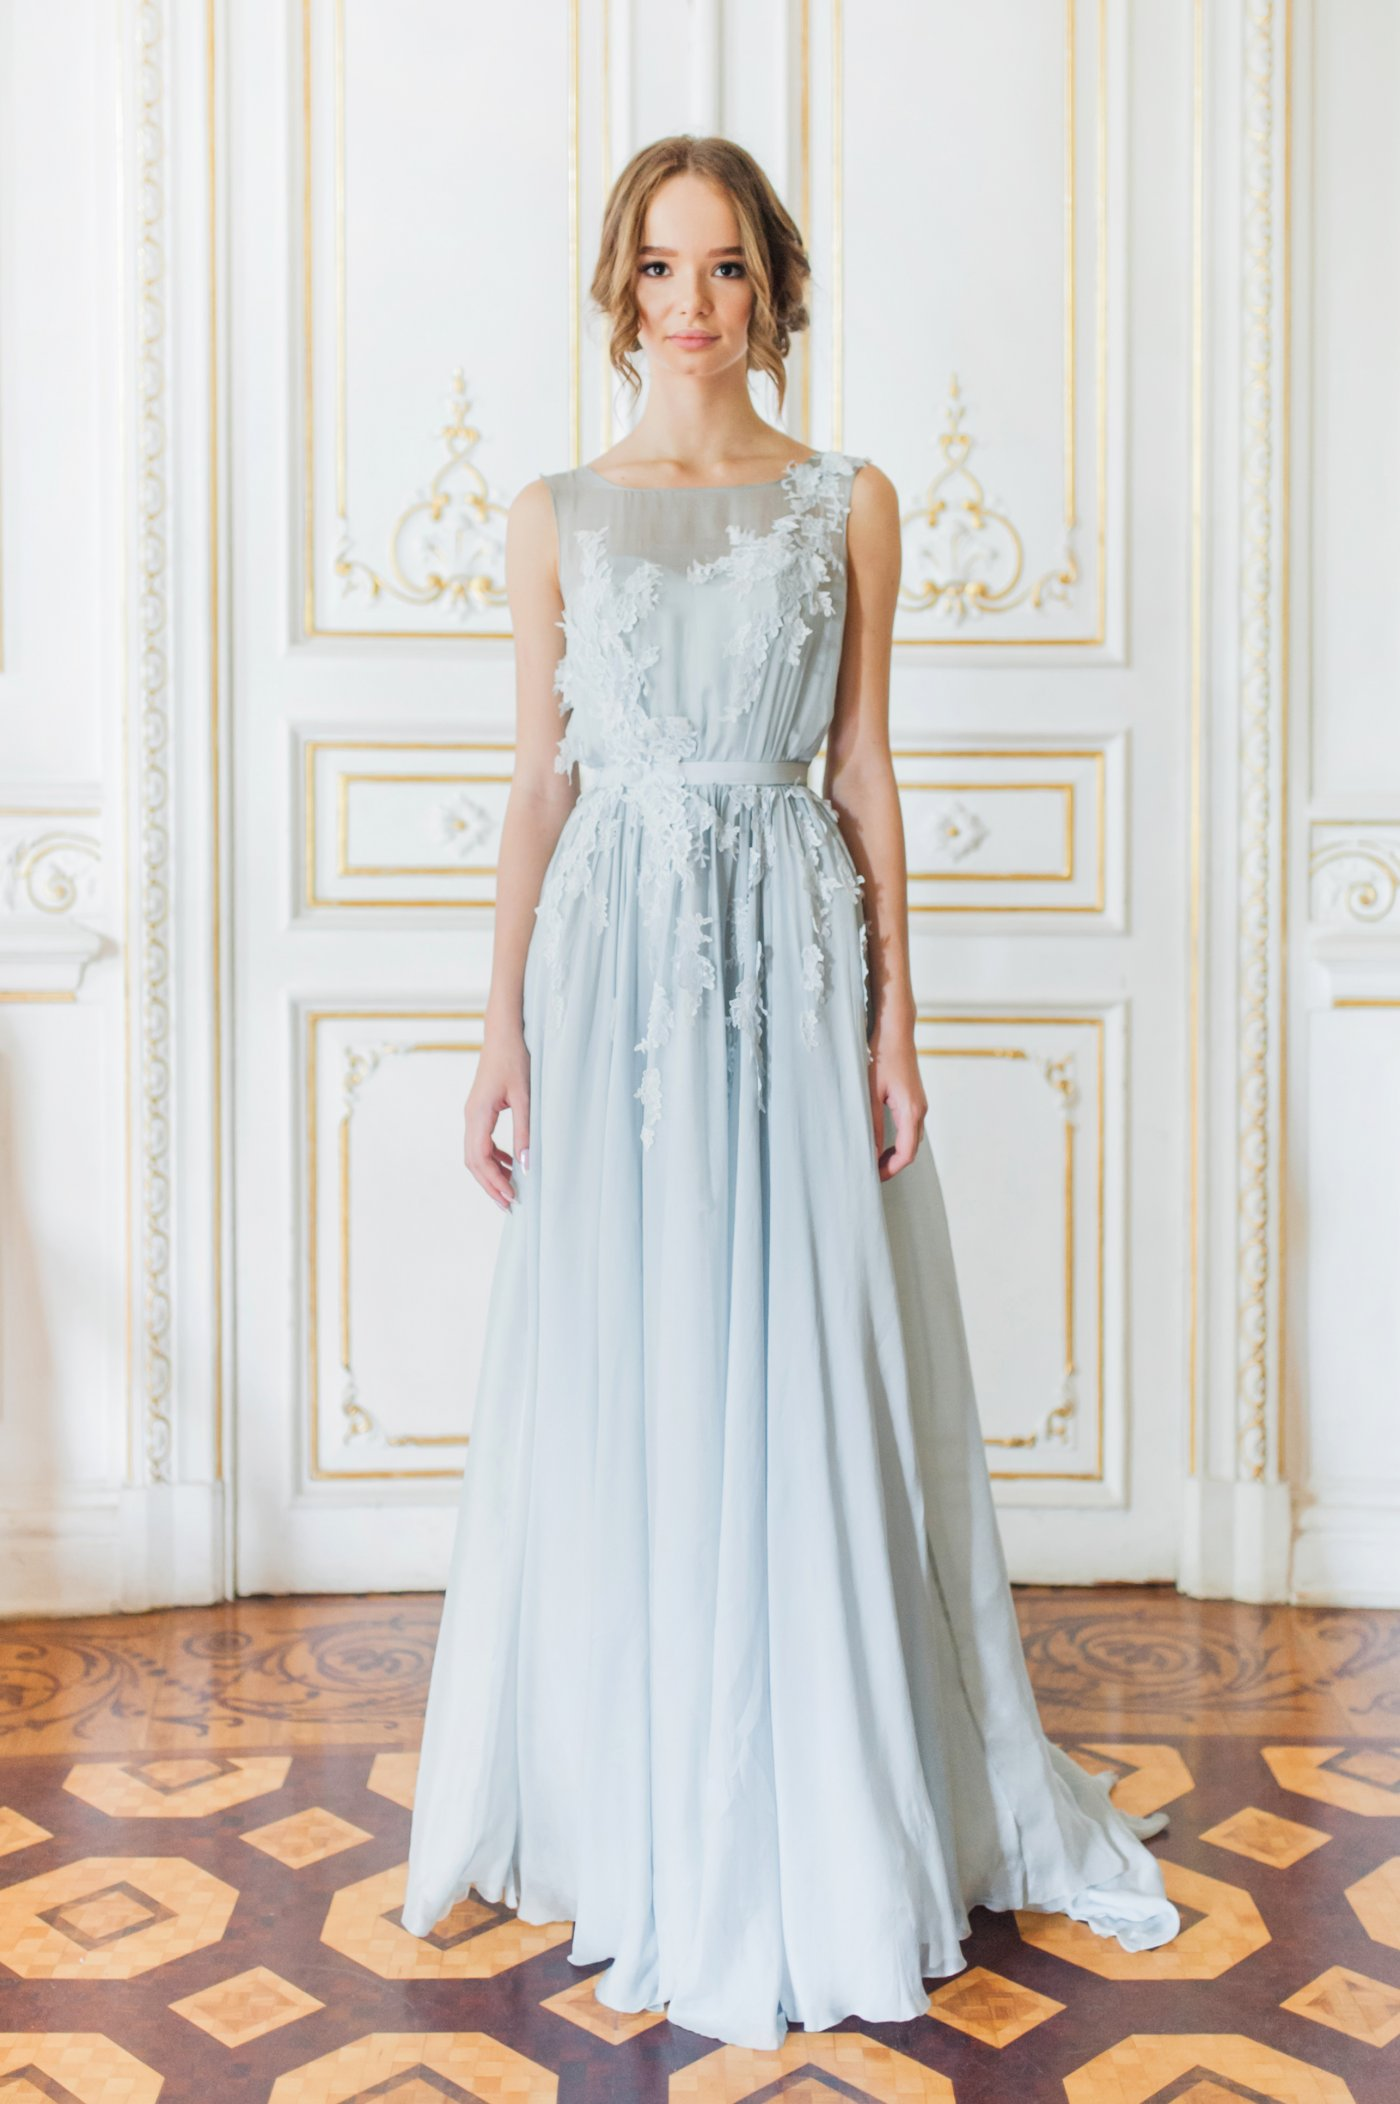 Sleeveless blue wedding gown with floral lace appliques floating ...